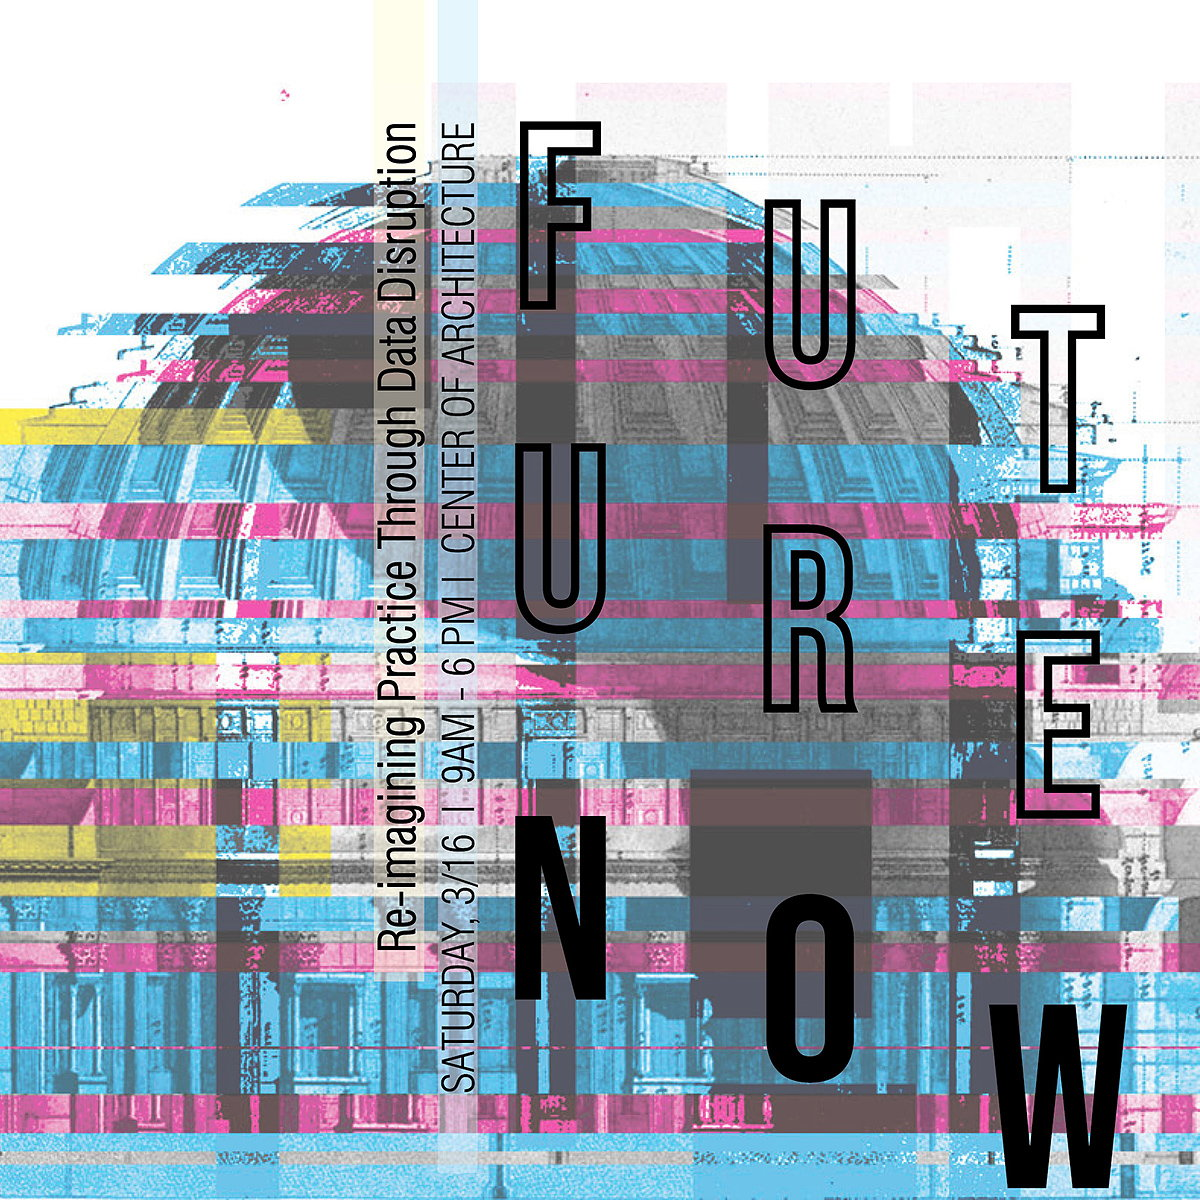 FutureNOW Symposium - Re-imagining Practice Through Data Disruption